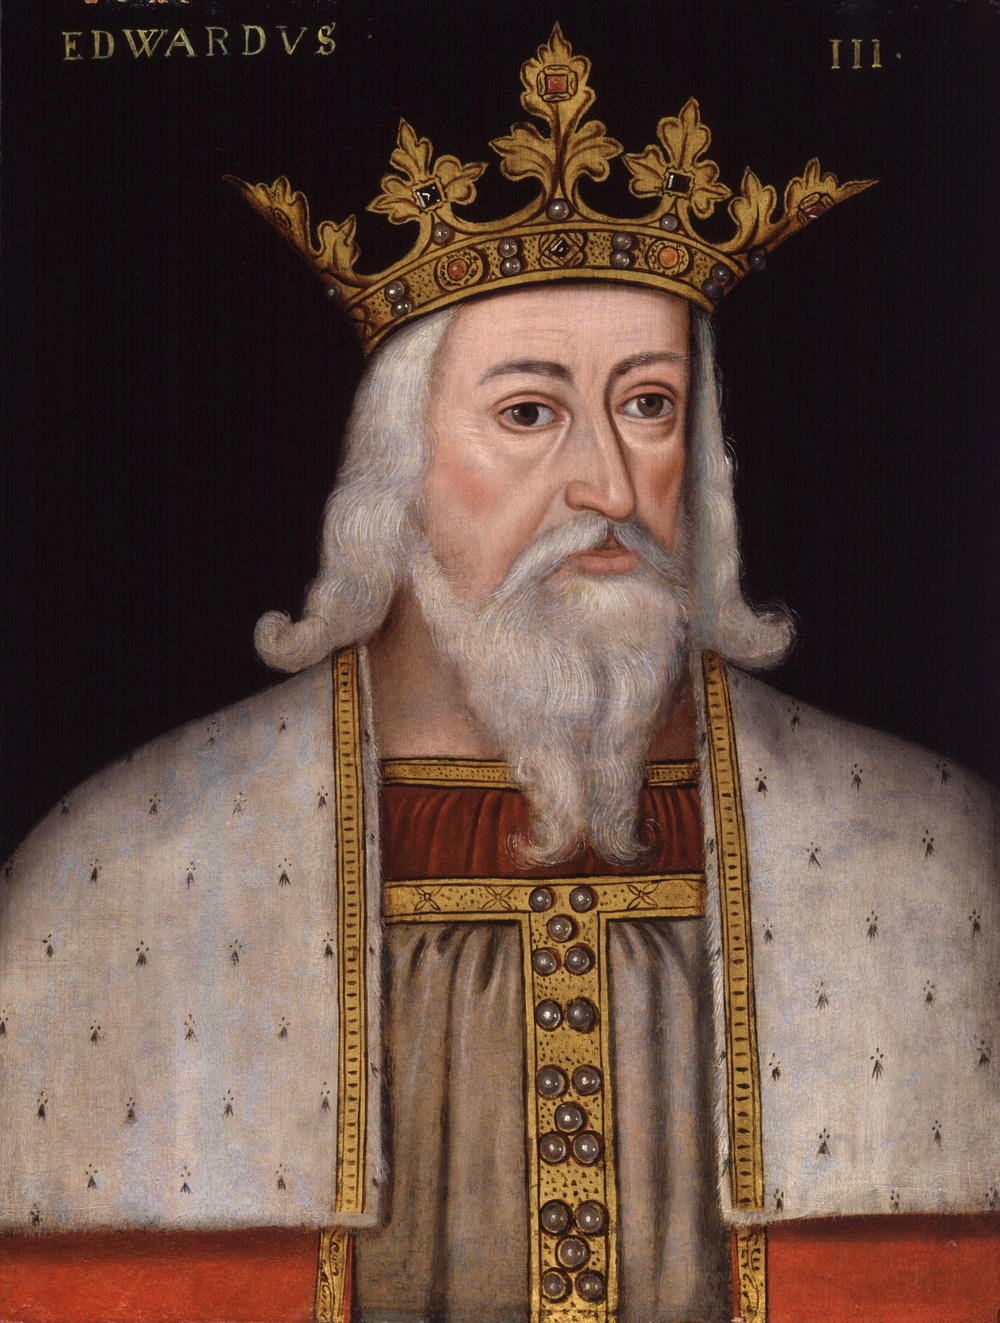 King_Edward_III_from_NPG.jpg